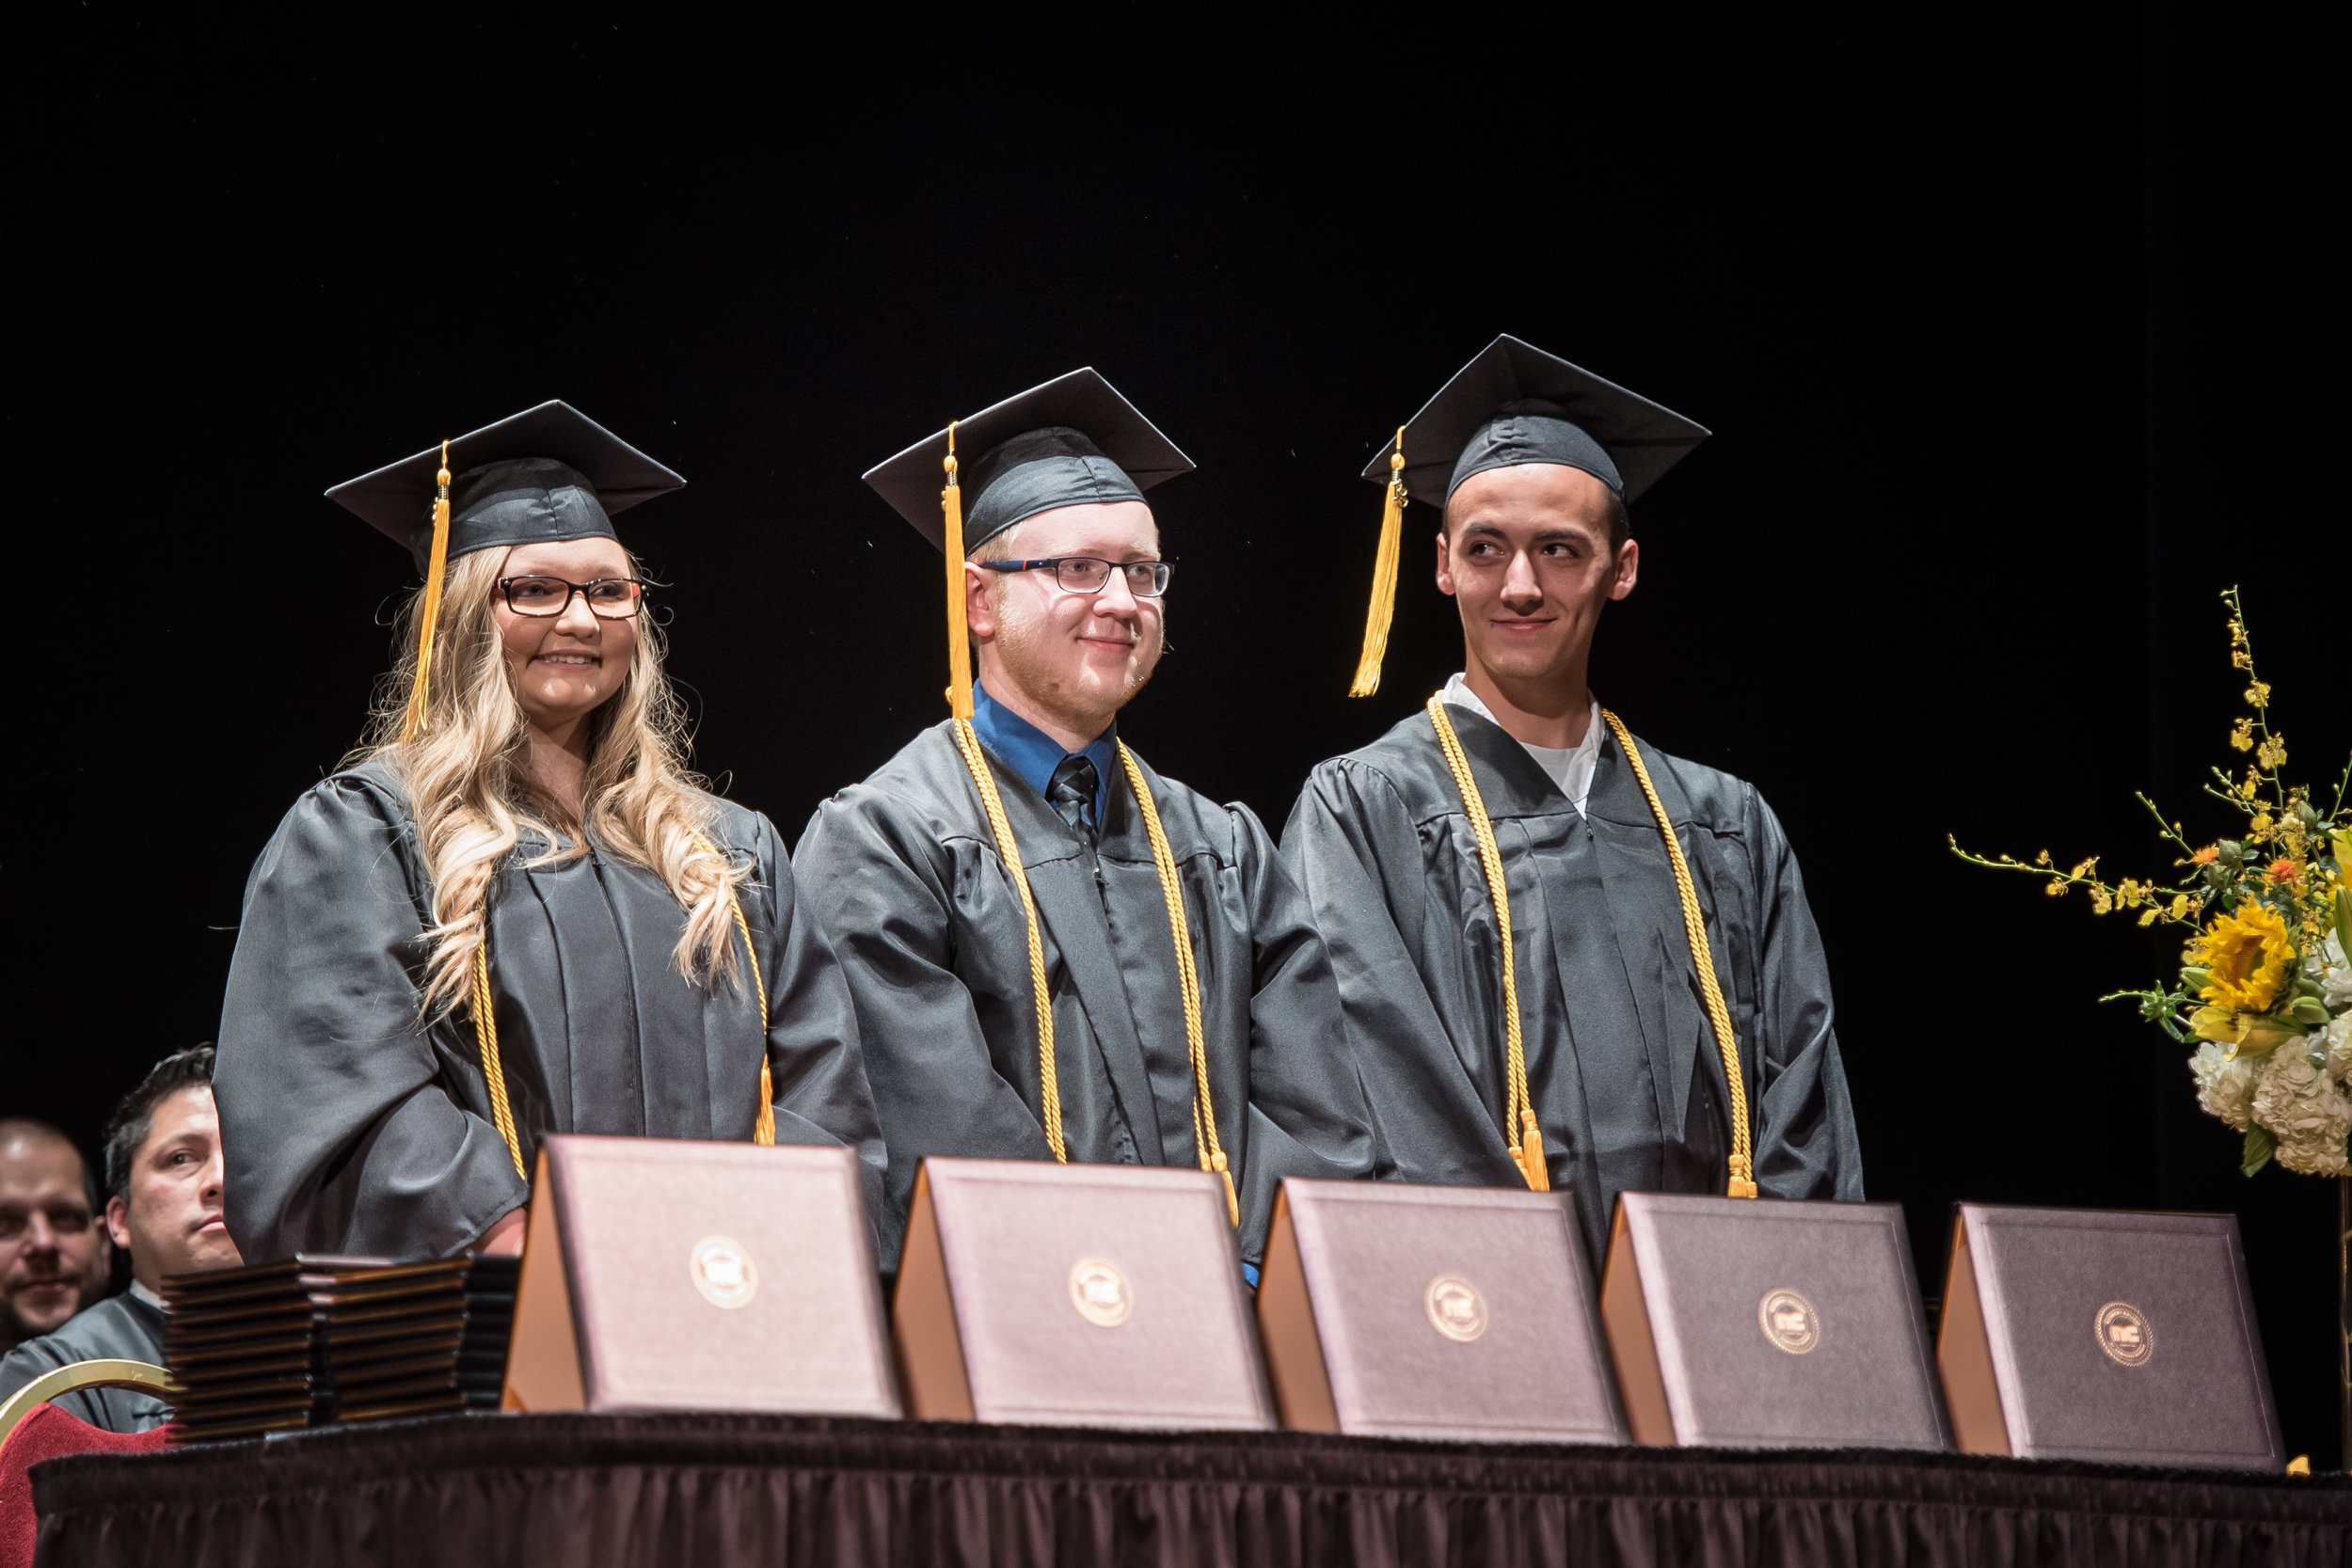 Valedictorian Mary Shultz (Computer Science) and Salutatorians Ben Goff (Computer Science) and Justin Furtado (Software & Game Development) stand to receive their diplomas.